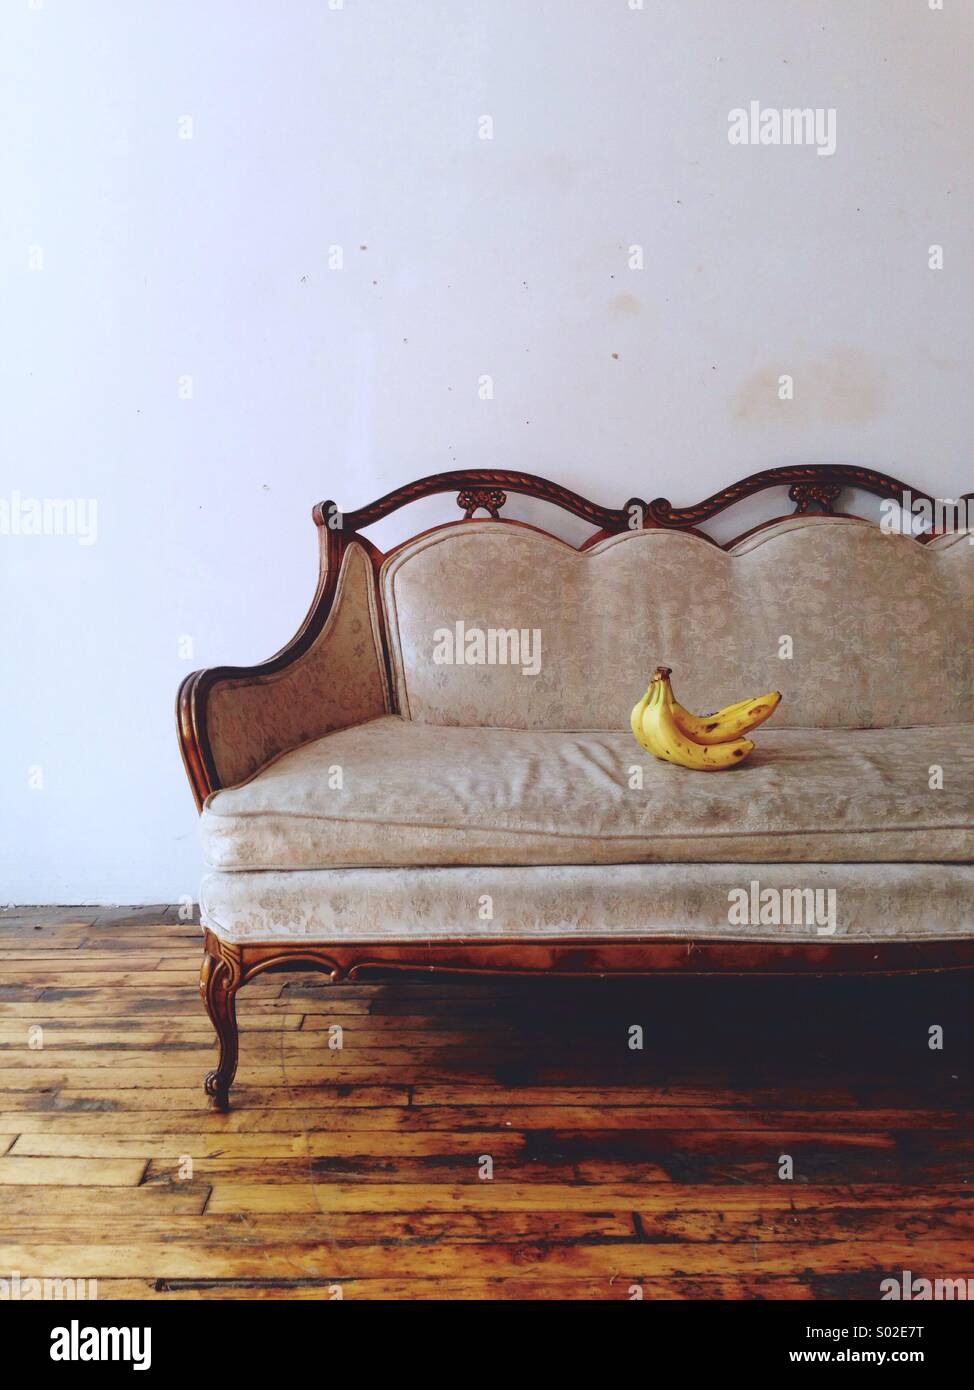 Chair, Sofa, With Bananas, Classical, Fruit, Art, Artistic, Artsy. Wood  Floor, Wood Furniture, White Wall, Old, Rustic, Shabby. Yellow Banana